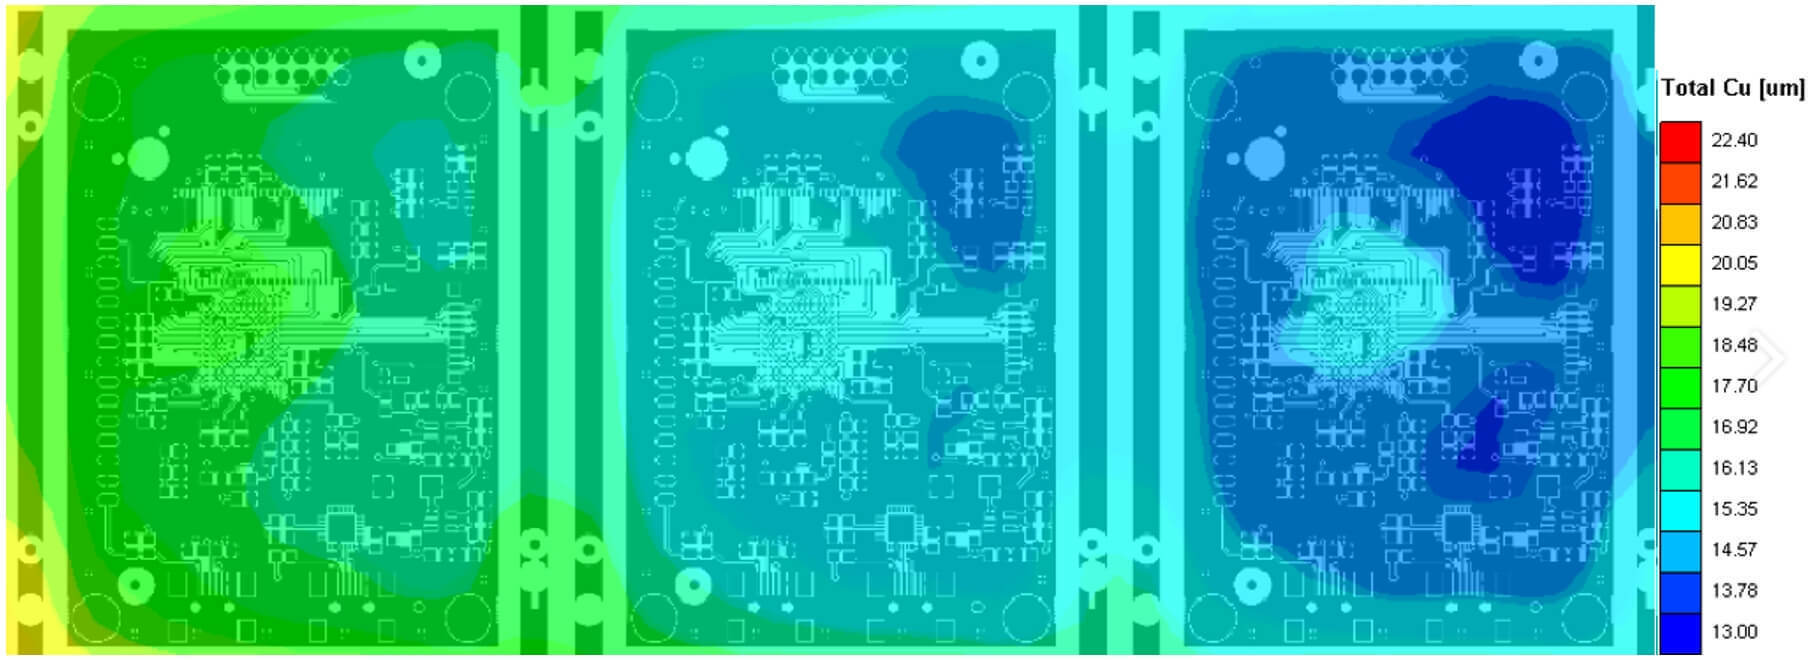 Same board with different layer thickness depending on position panel